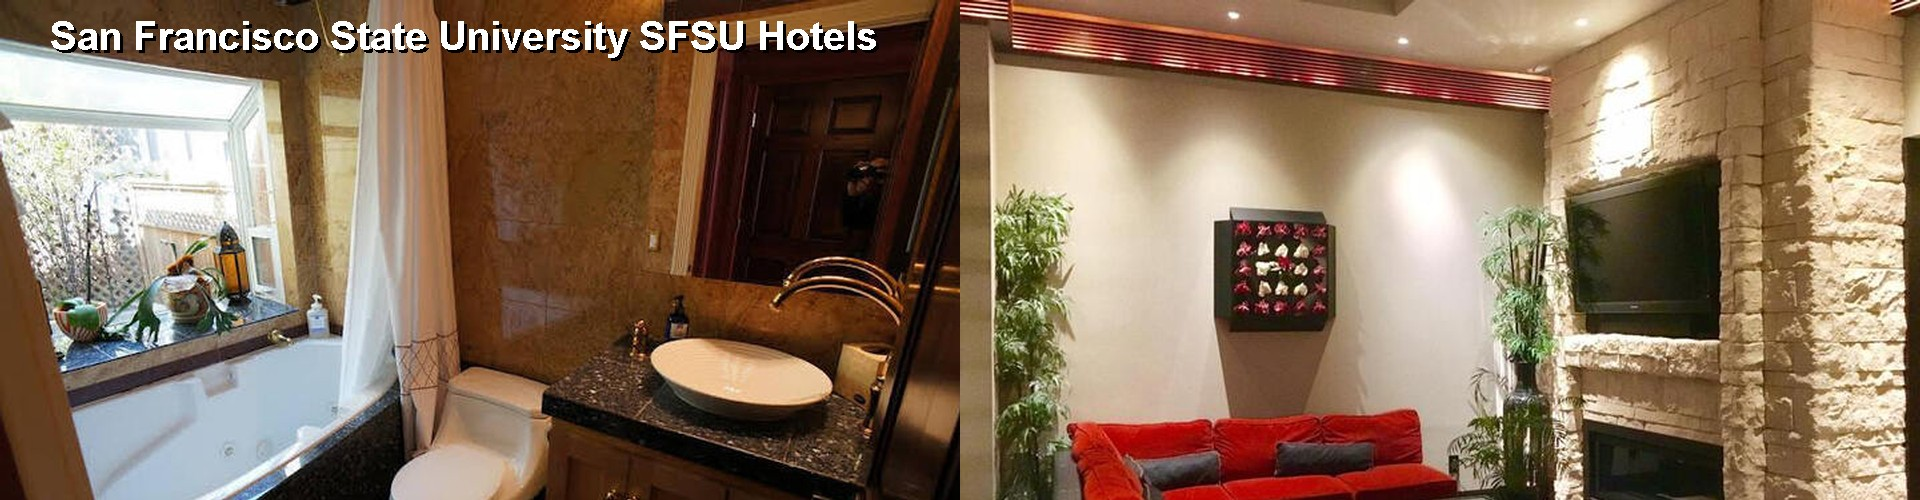 5 Best Hotels near San Francisco State University SFSU